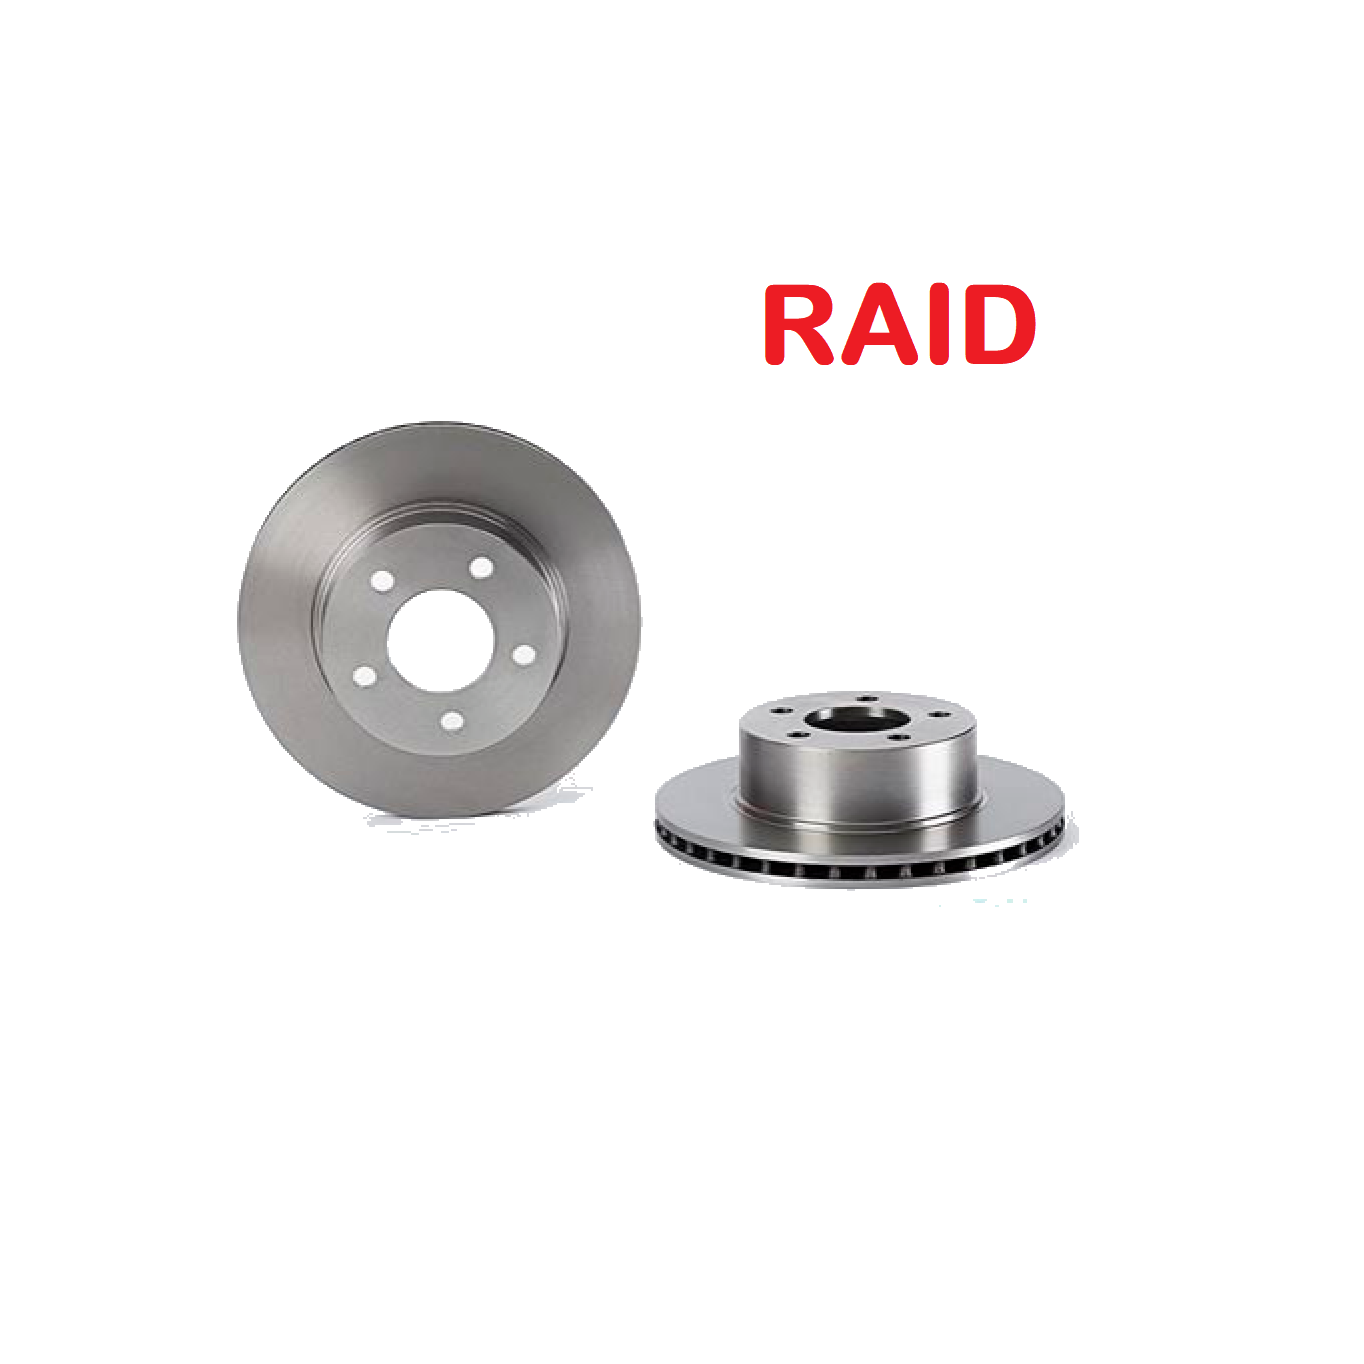 PAIR OF FRONT BRAKE DISCS JEEP CHEROKEE - WRANGLER RAID FOR J3251156